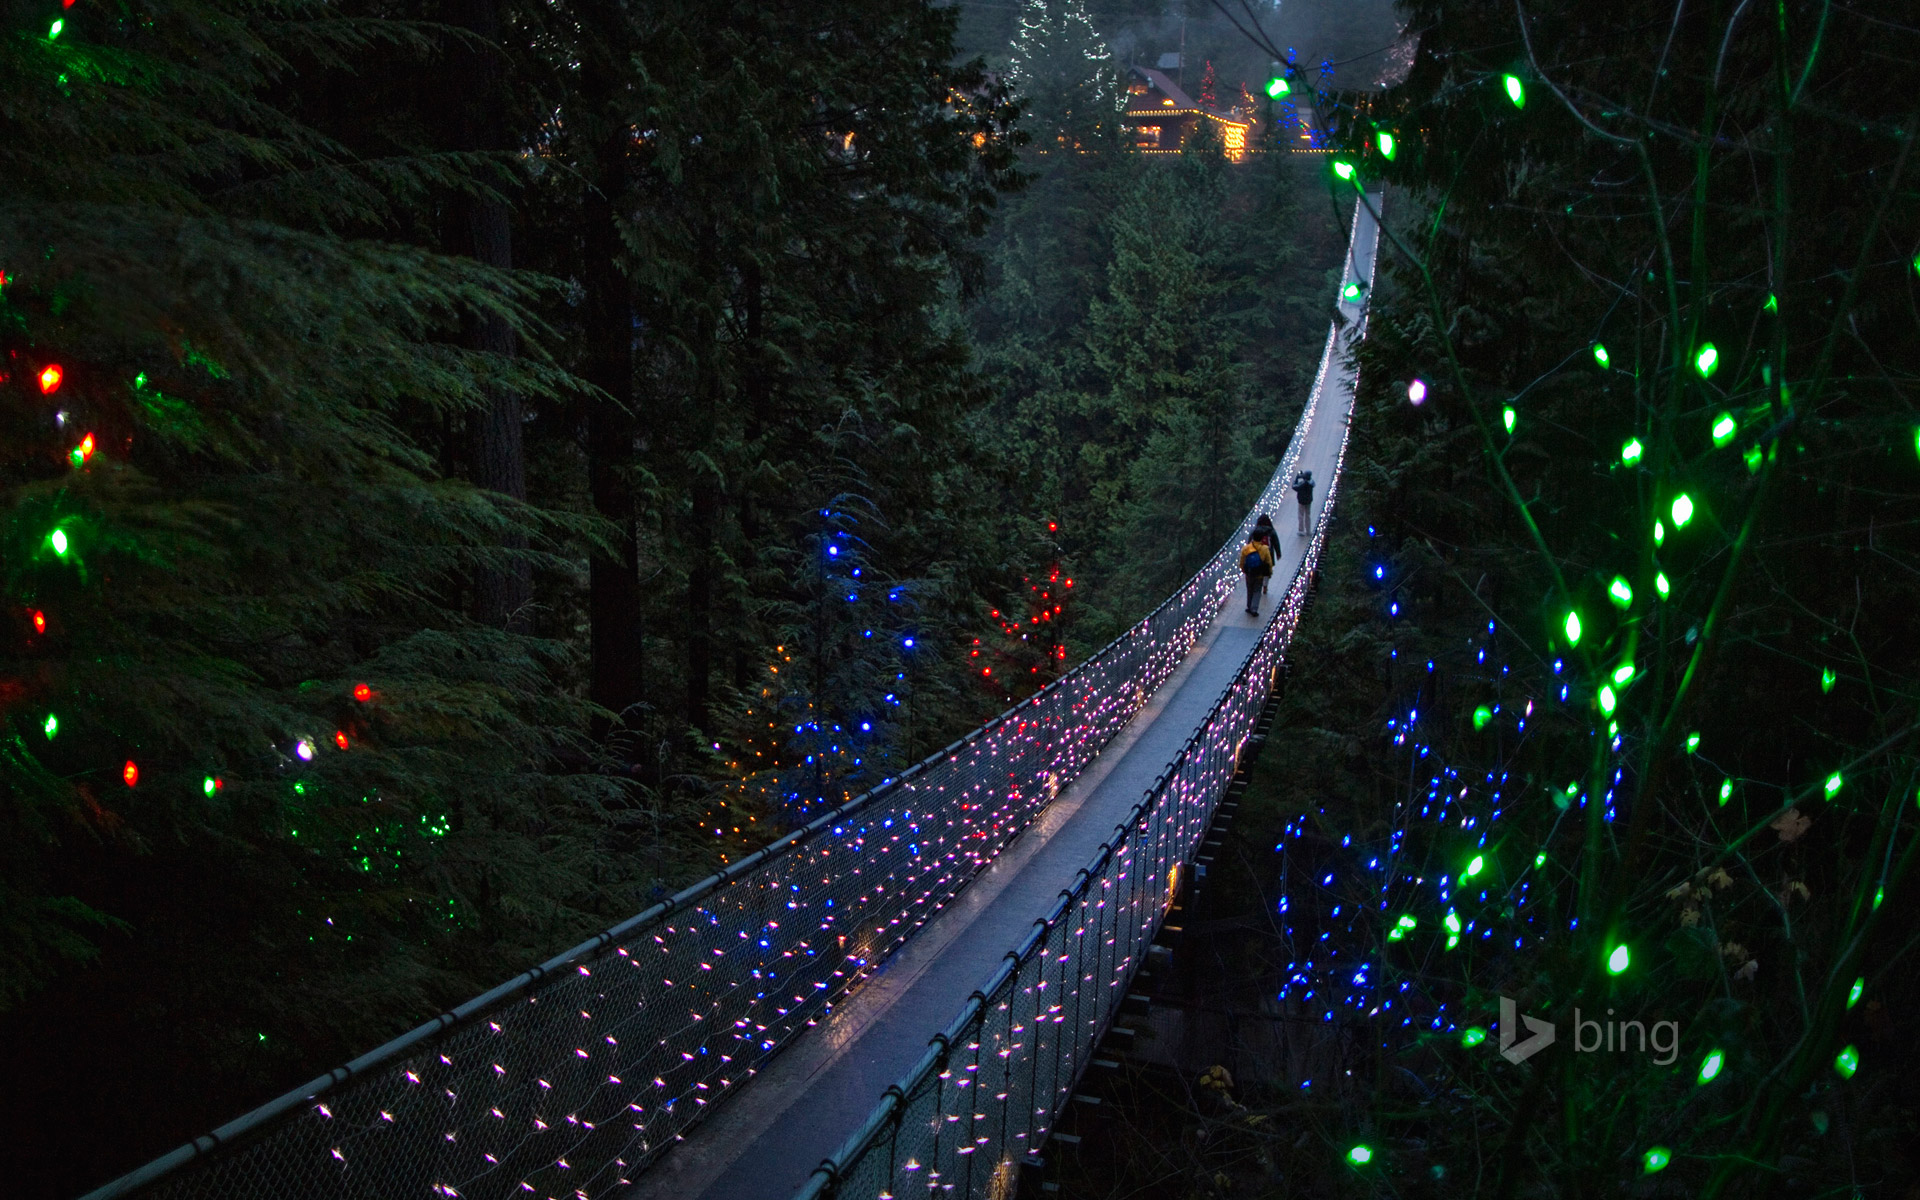 The Capilano Suspension Bridge in Vancouver, British Columbia, Canada